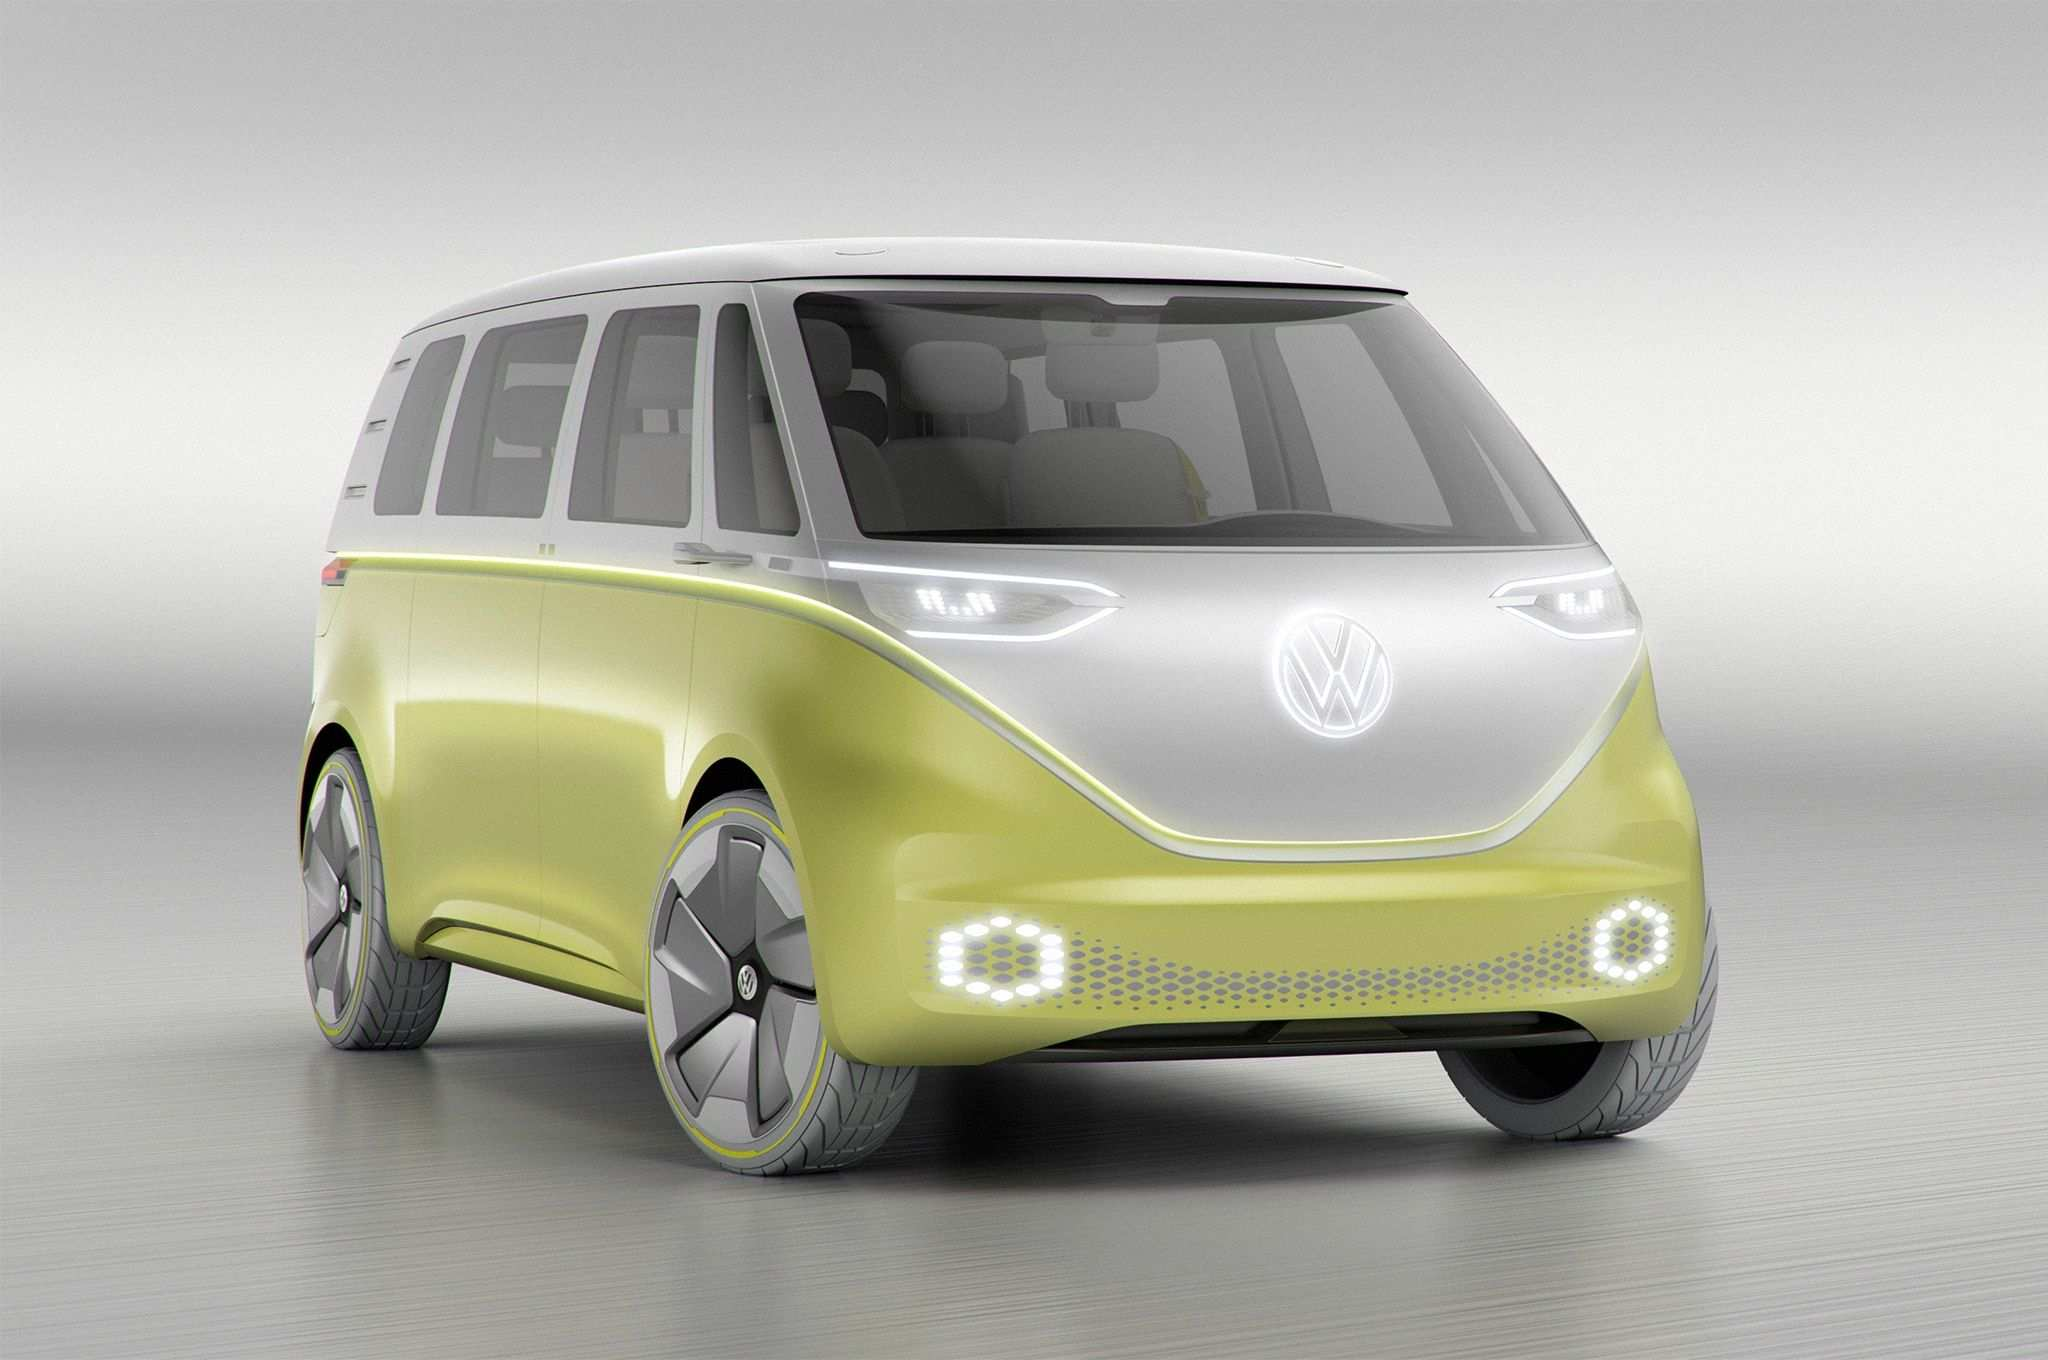 93 The VW Minivan 2020 Picture with VW Minivan 2020